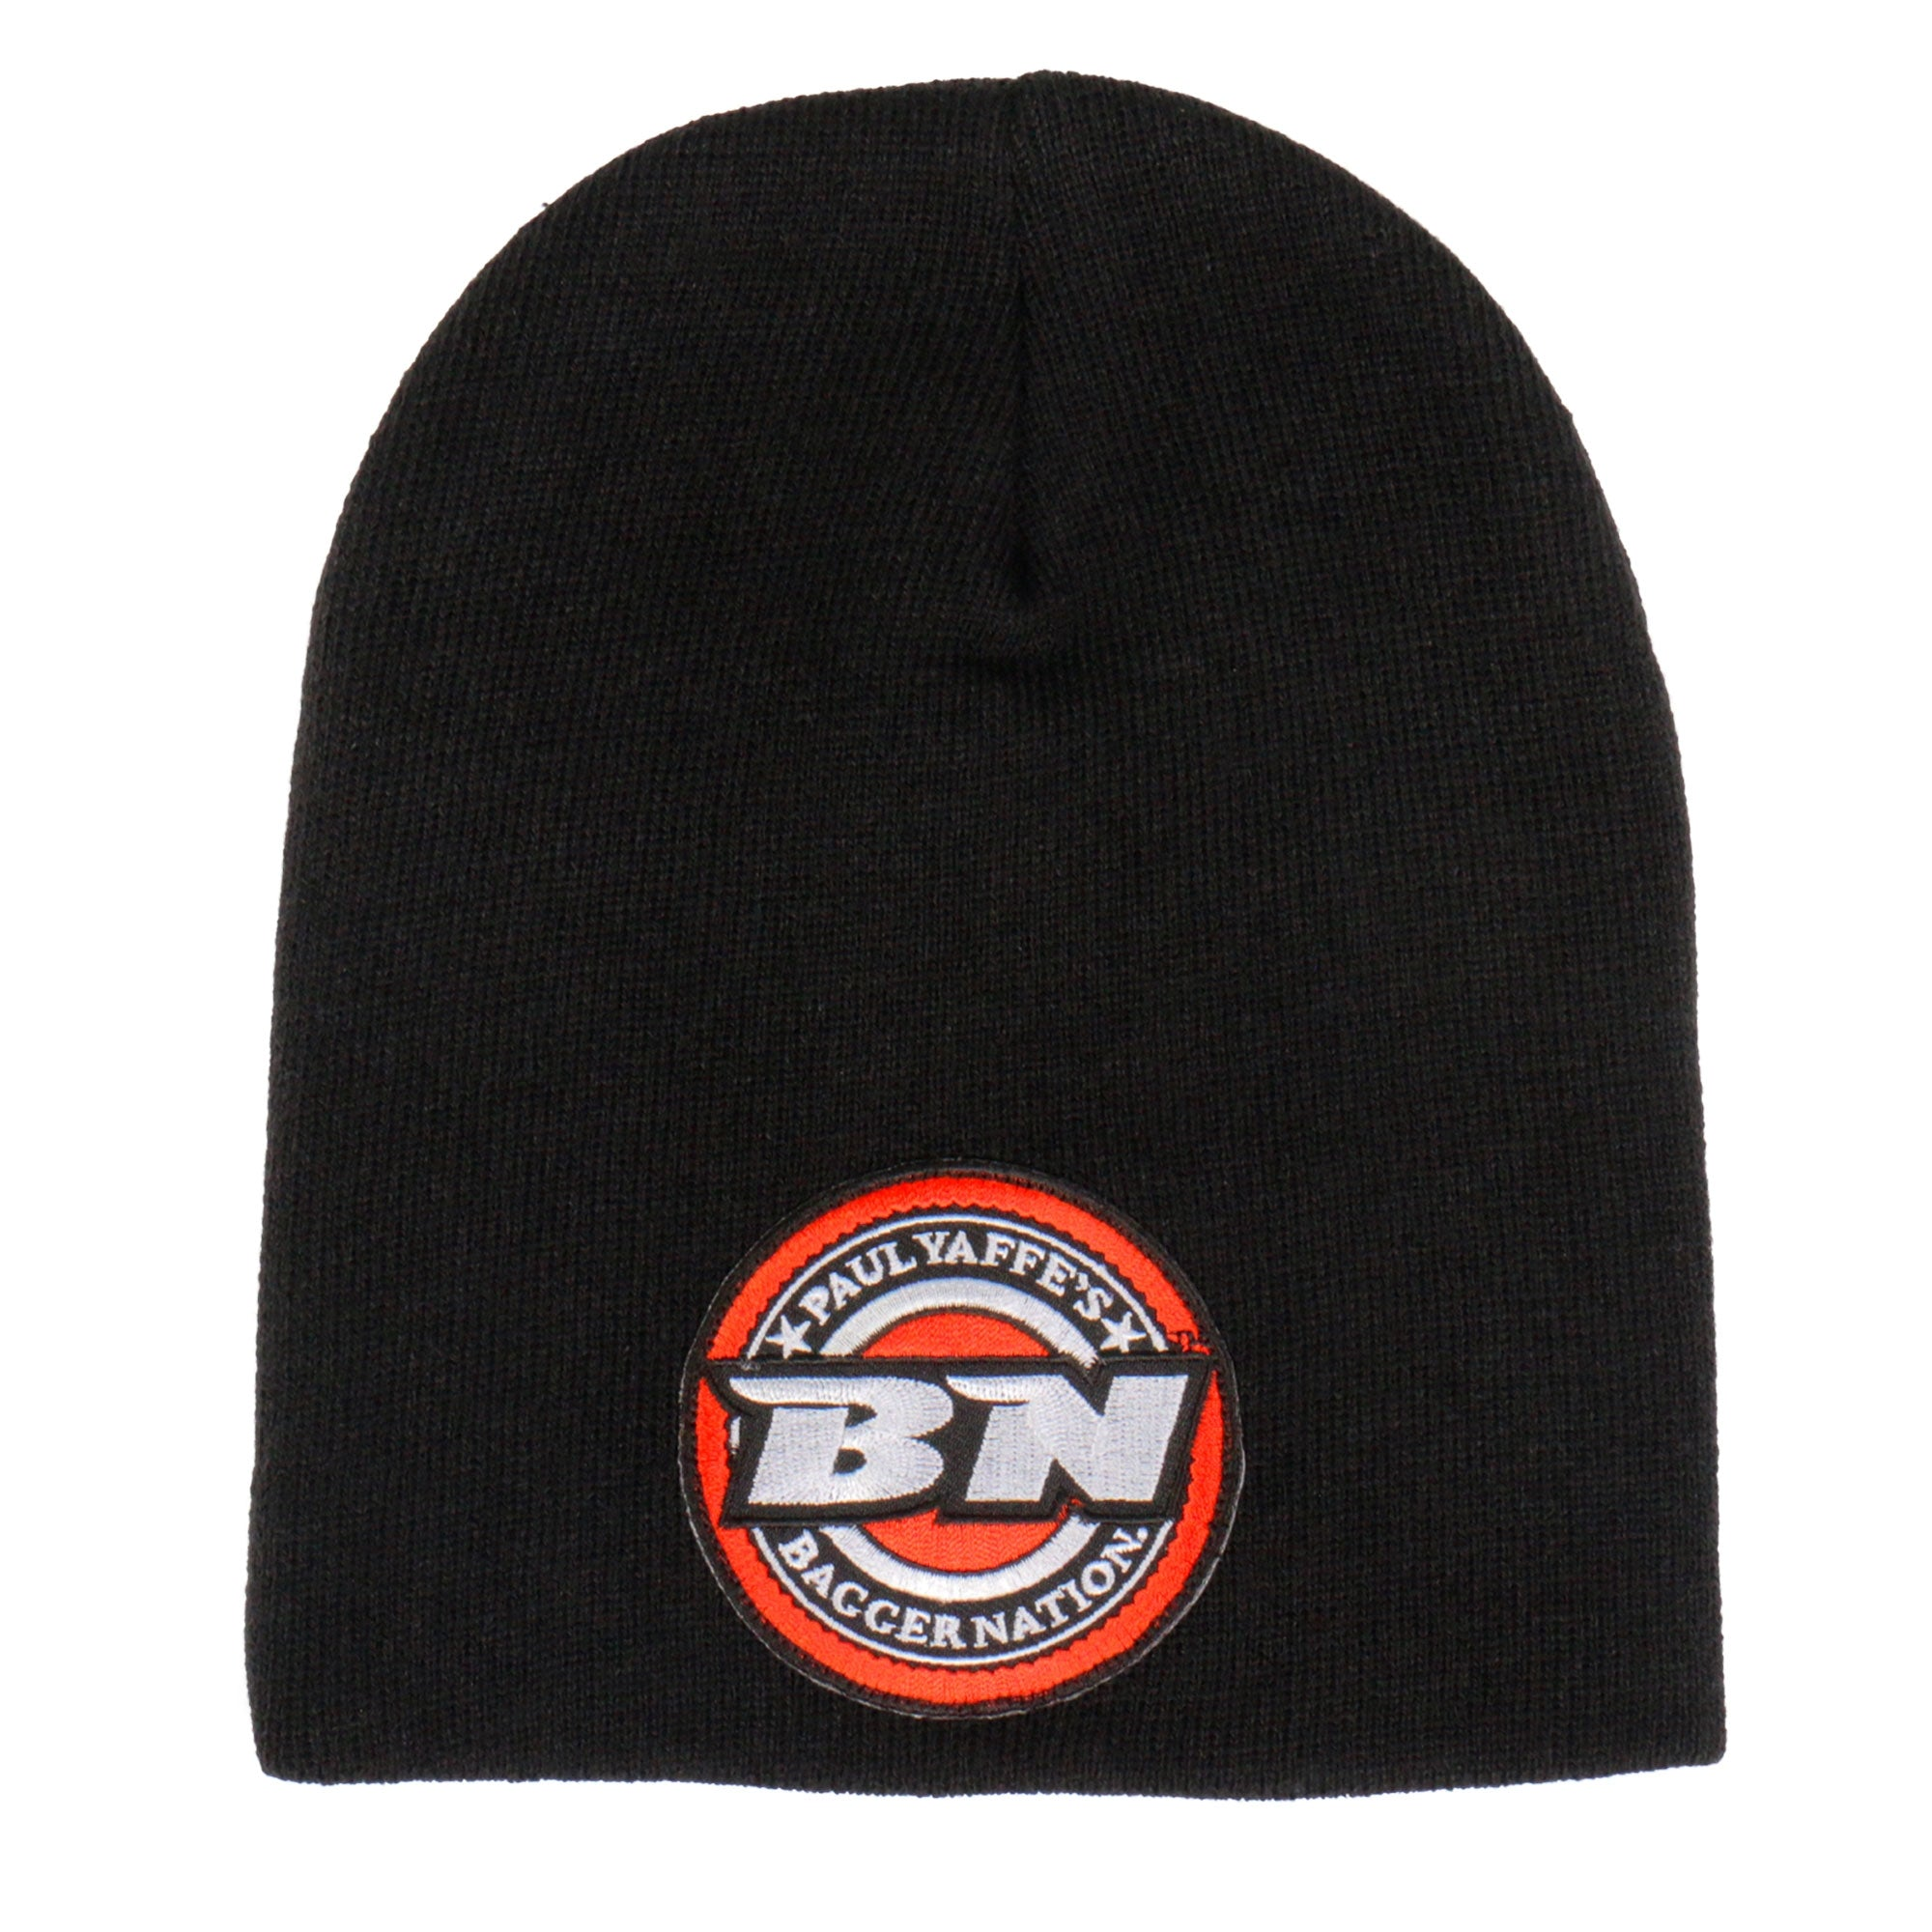 Official Paul Yaffe's Bagger Nation Coin Logo Knit Hat